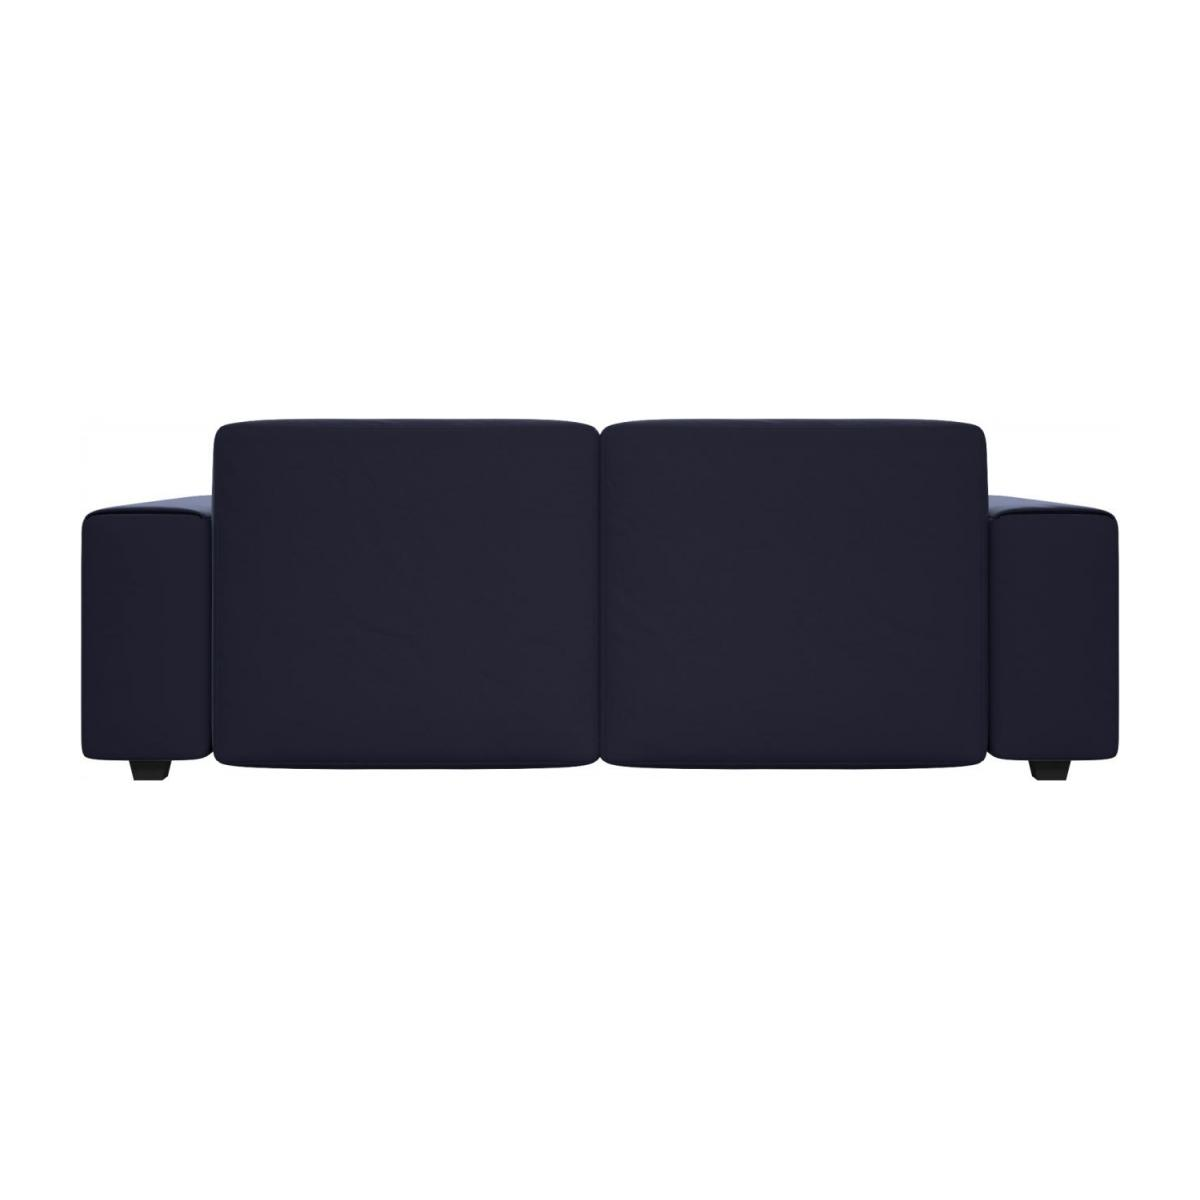 3 seater sofa in Super Velvet fabric, dark blue n°3